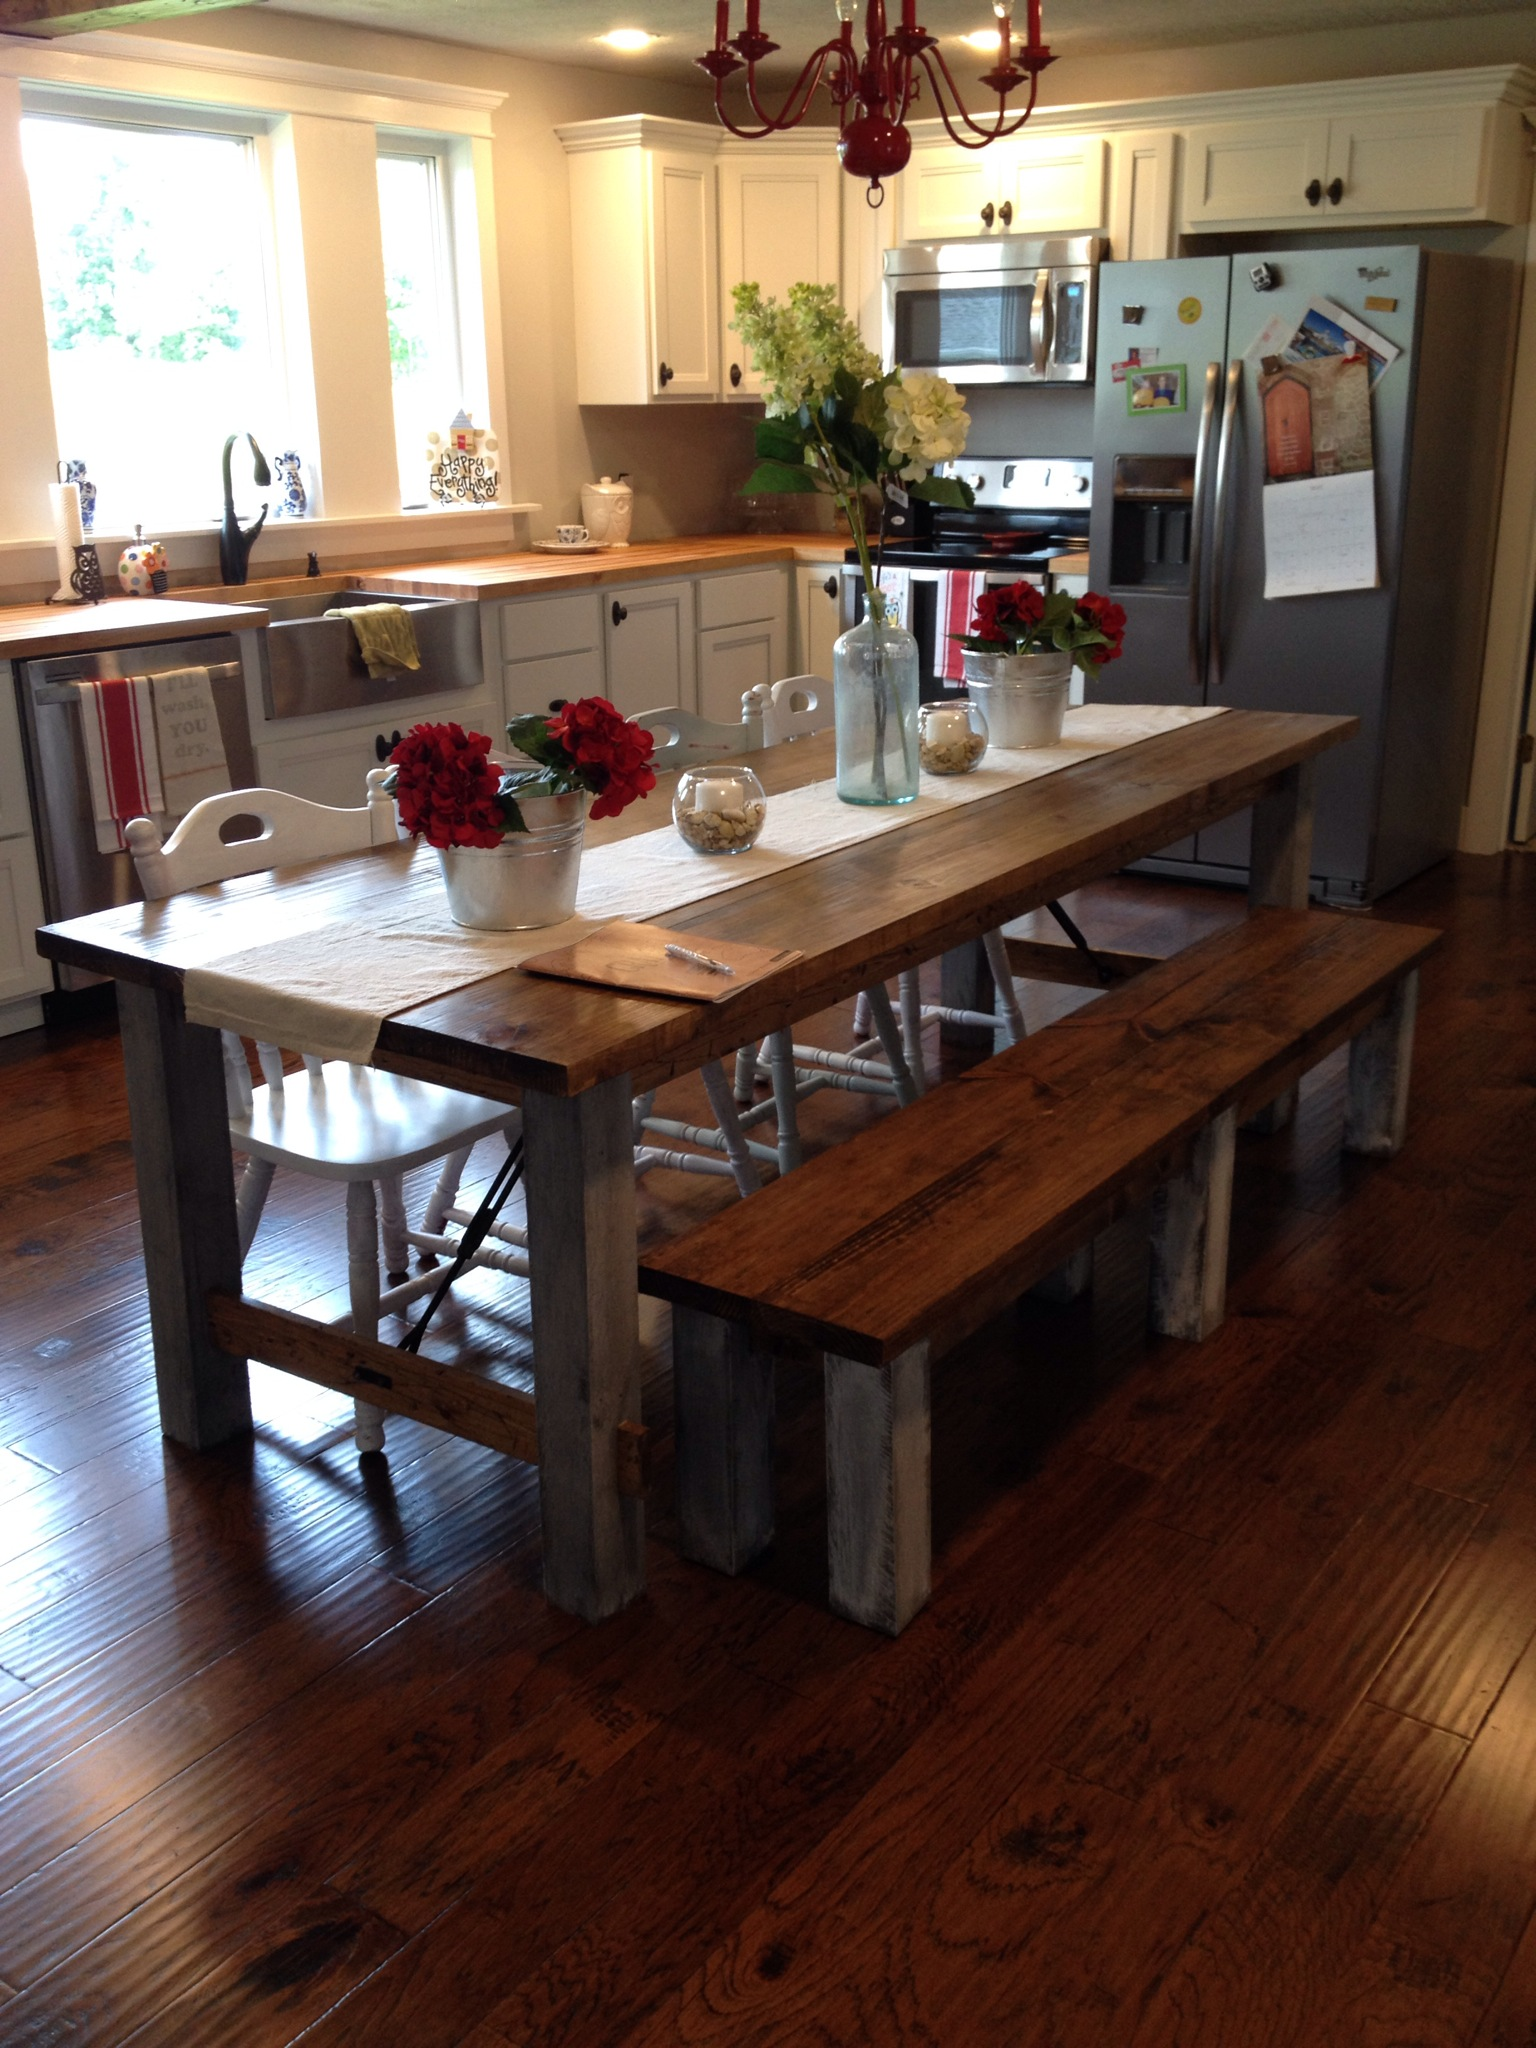 Shara at Chasing a Dream Shares her Farmhouse Kitchen Table ...